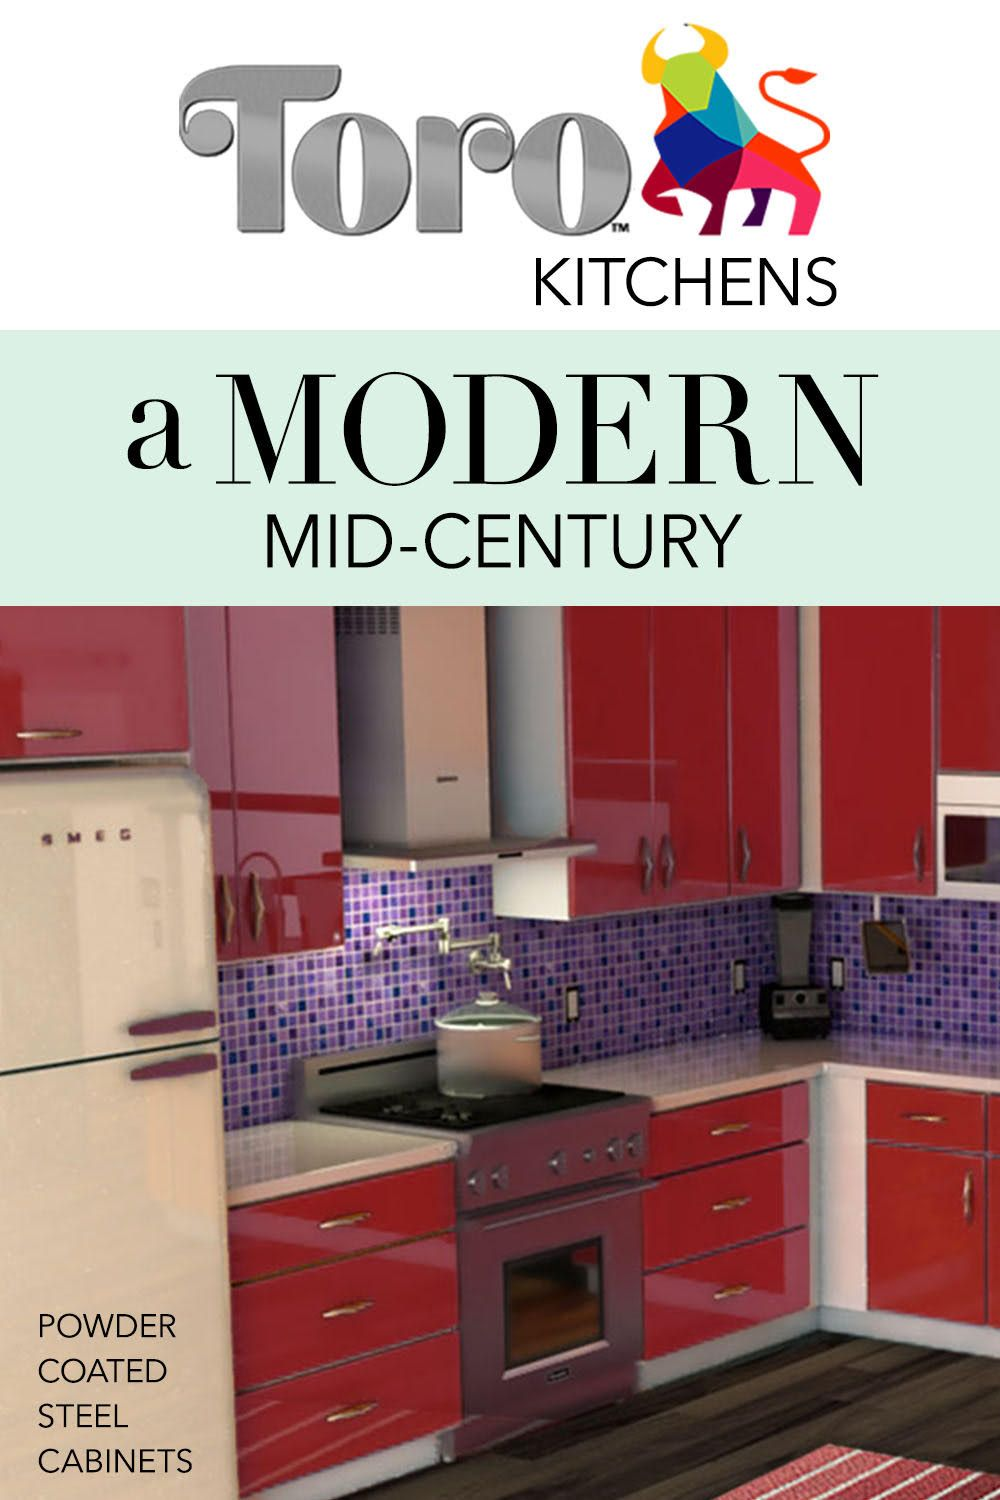 The Custom Modern Kitchen Cabinets You Ve Been Dreaming About Metal Kitchen Cabinets Kitchen Cabinet Design Kitchen Cabinets